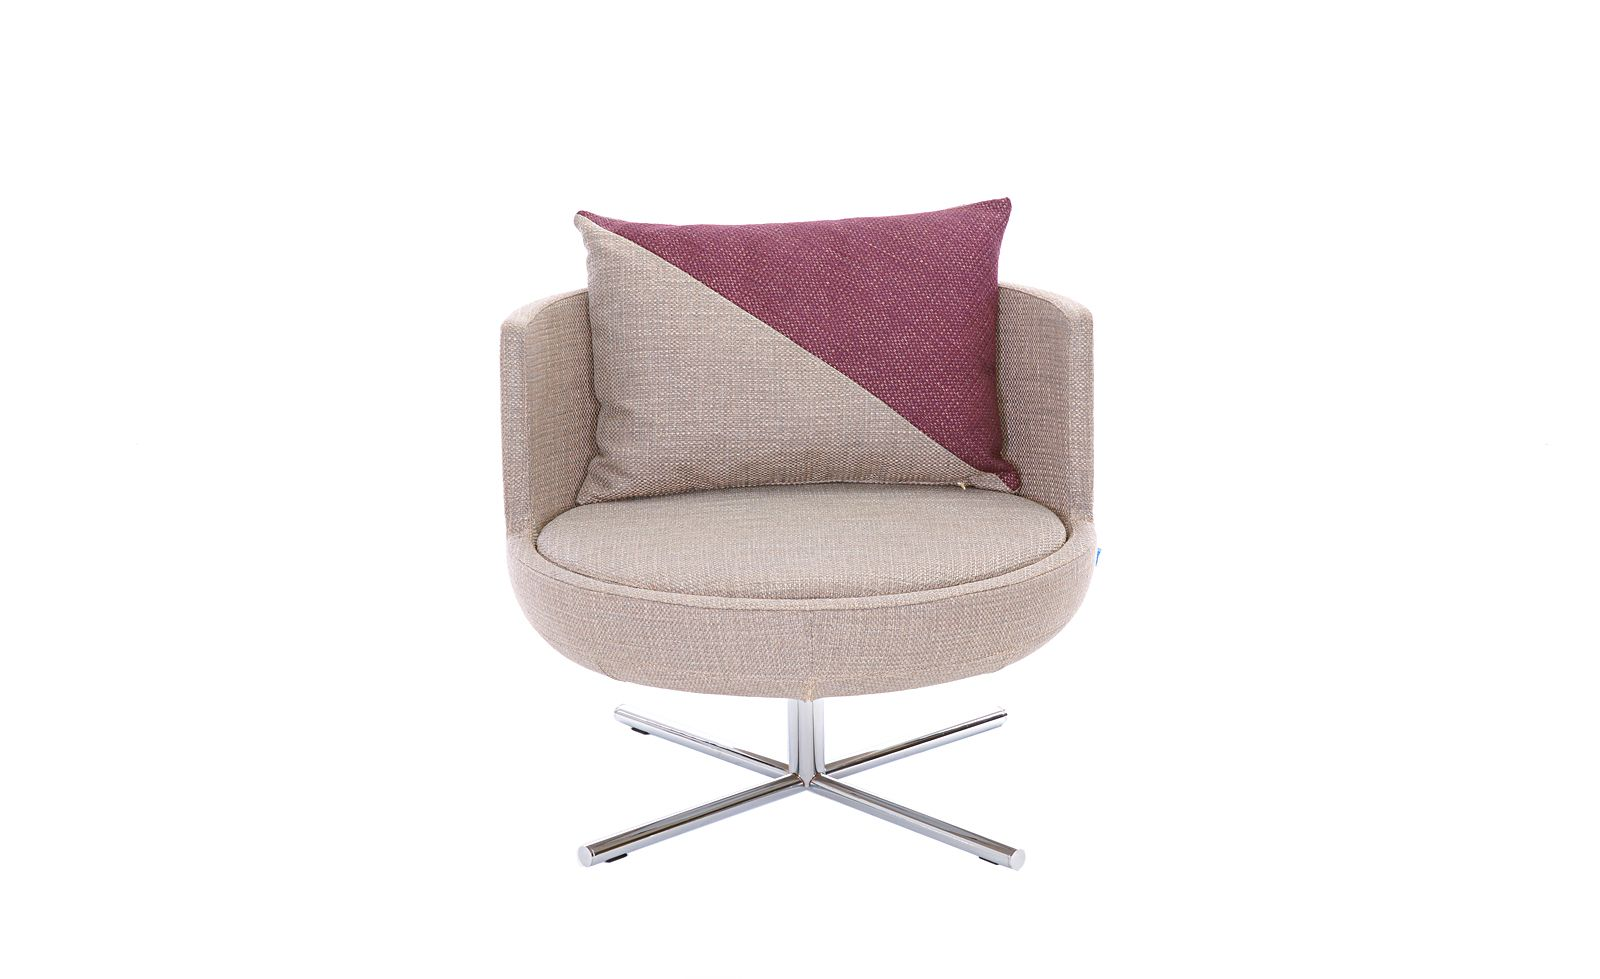 This Gorgeous And Comfortable Pink And Tan Swivel Chair Has A